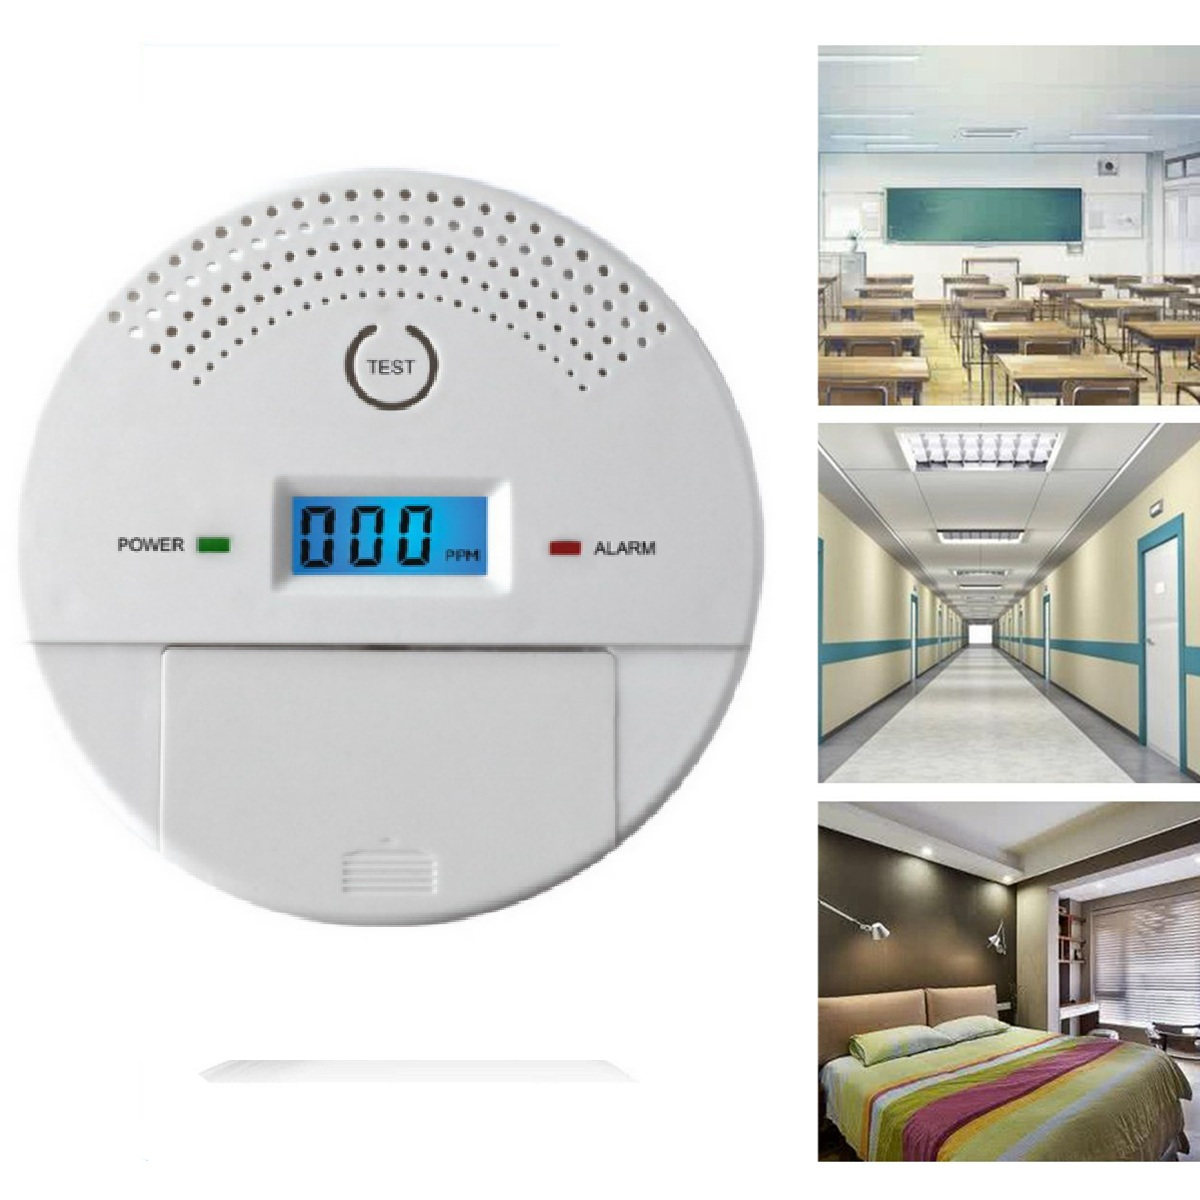 Combination Smoke and Carbon Monoxide Detector for Home, Travel Portable Fire&Co Alarm Battery Operated with Sound Warning and Digital Display